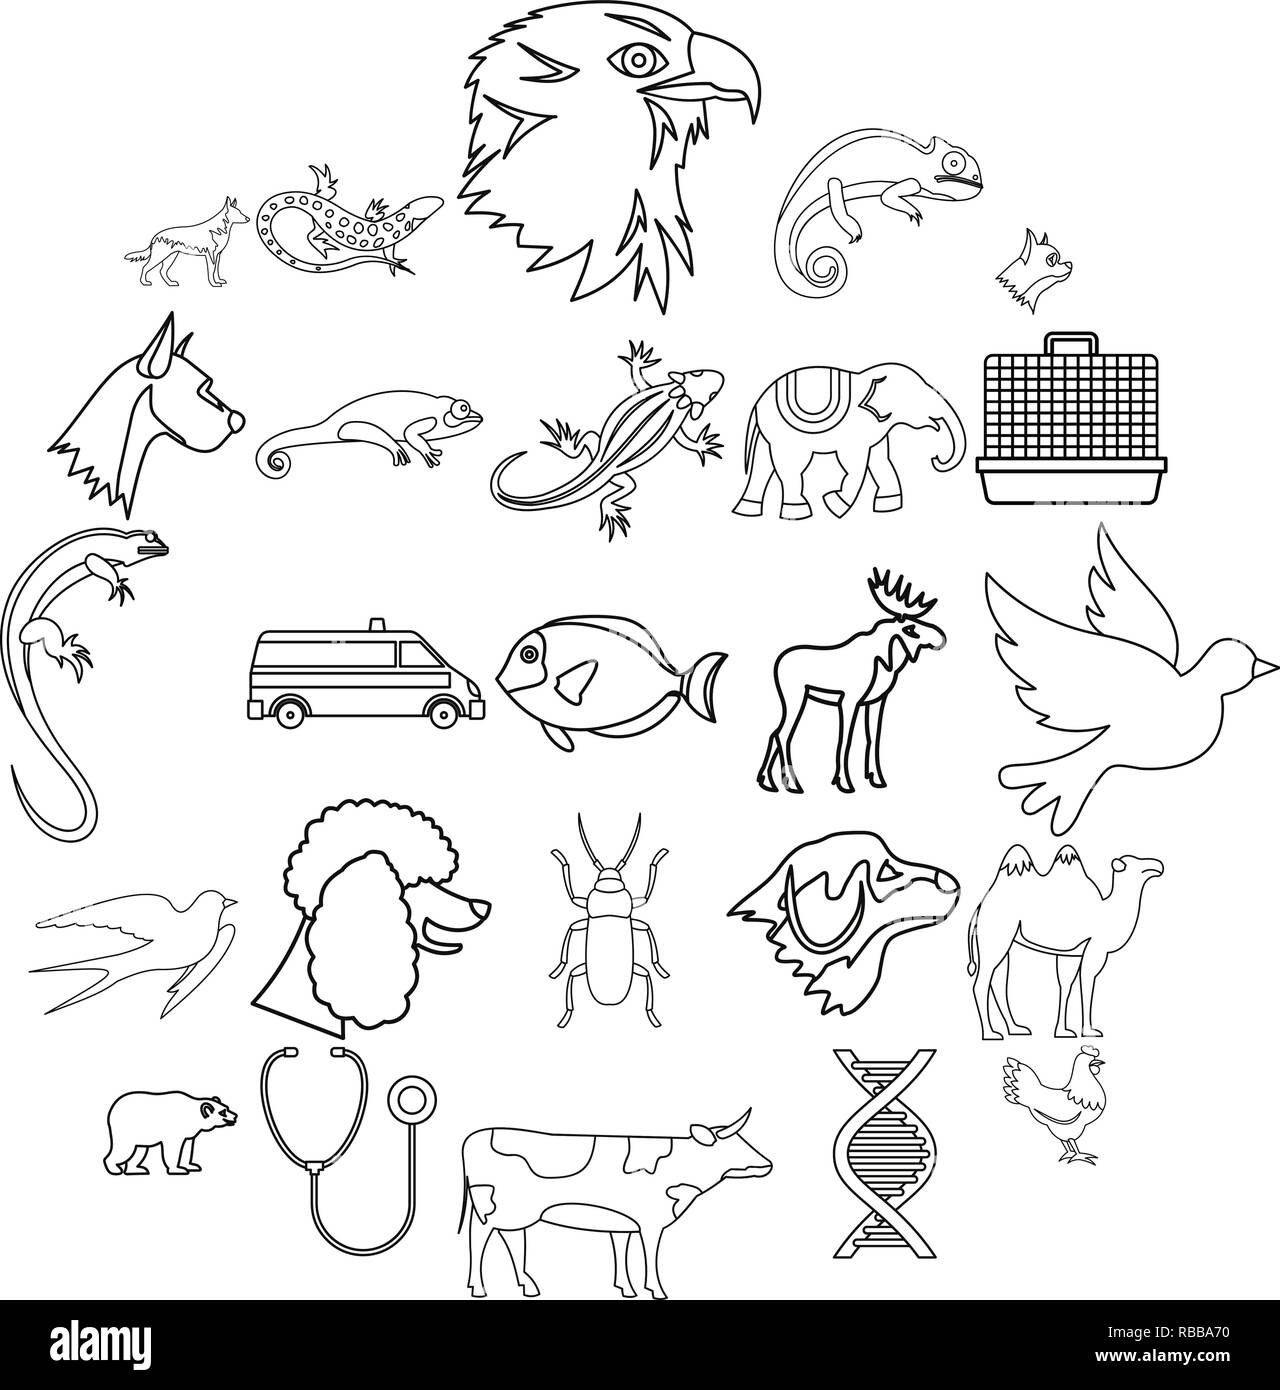 Animal care icons set, outline style - Stock Image